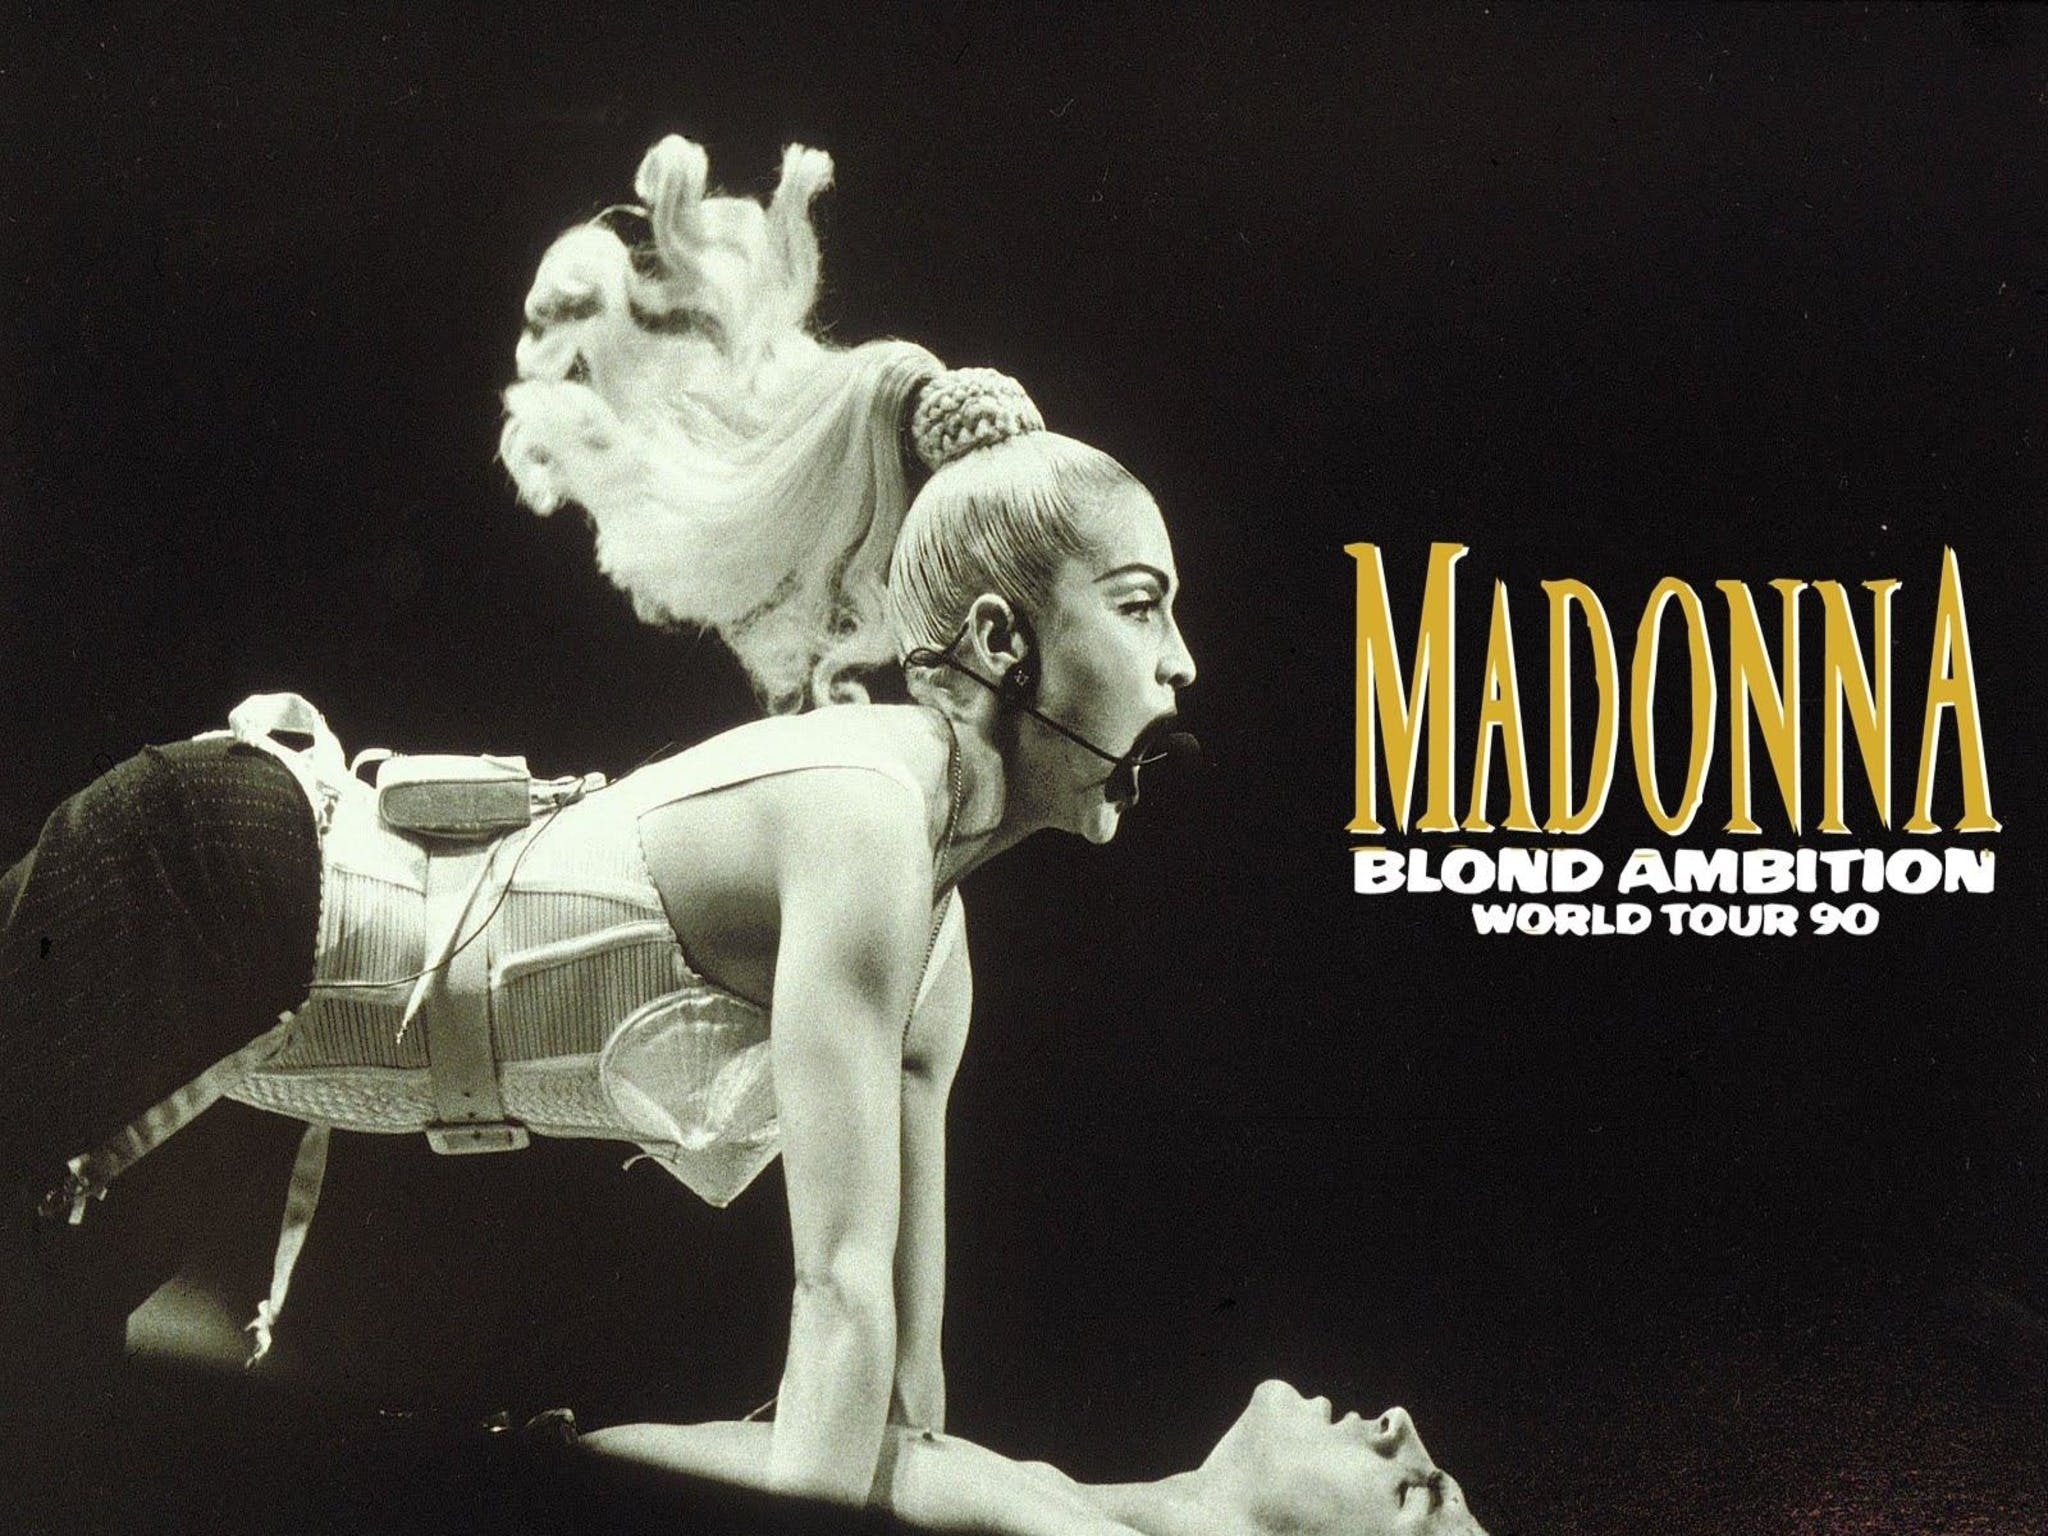 Madonna Blond Ambition Tour - Accommodation Tasmania